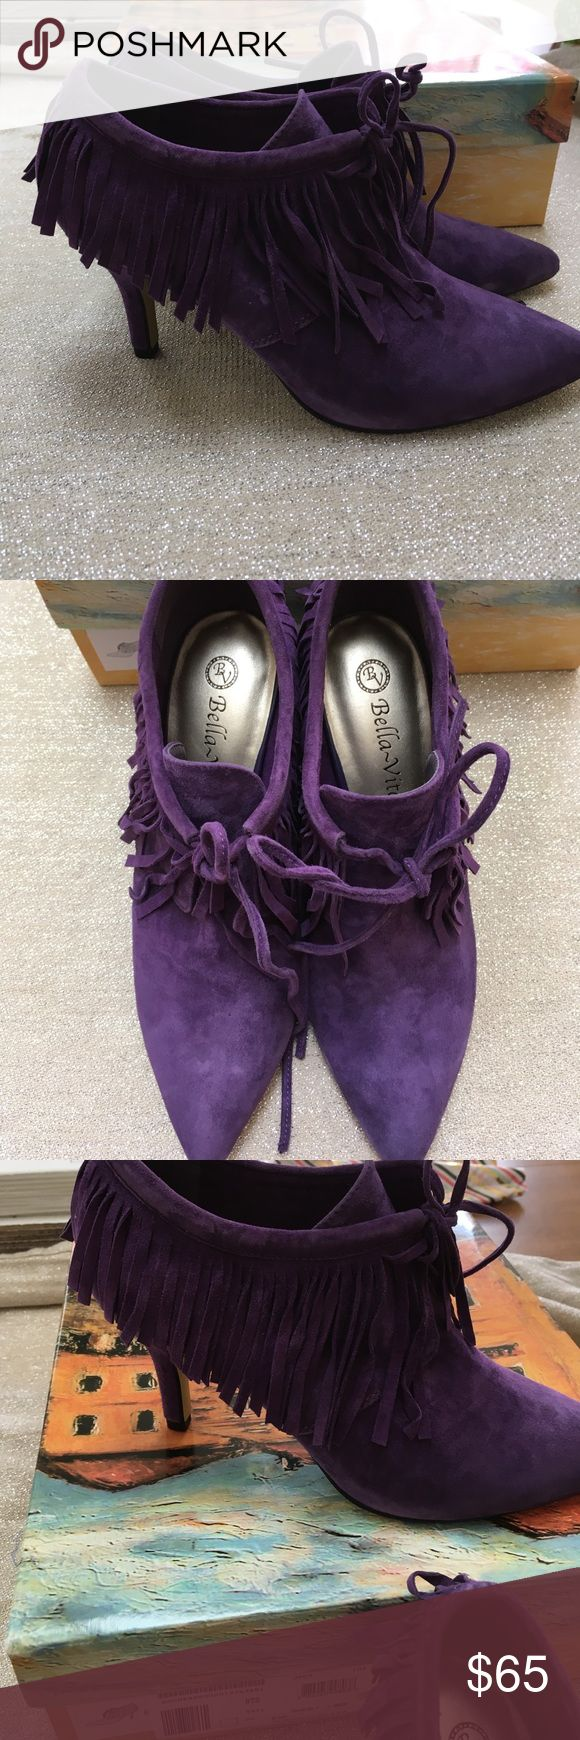 Bella Vita Demi Fringe bootie size 7 Bella Vita Demi Fringe bootie size 7.  Awesome purple color!  New in the box never worn!  Make an offer!! bella vita Shoes Ankle Boots & Booties